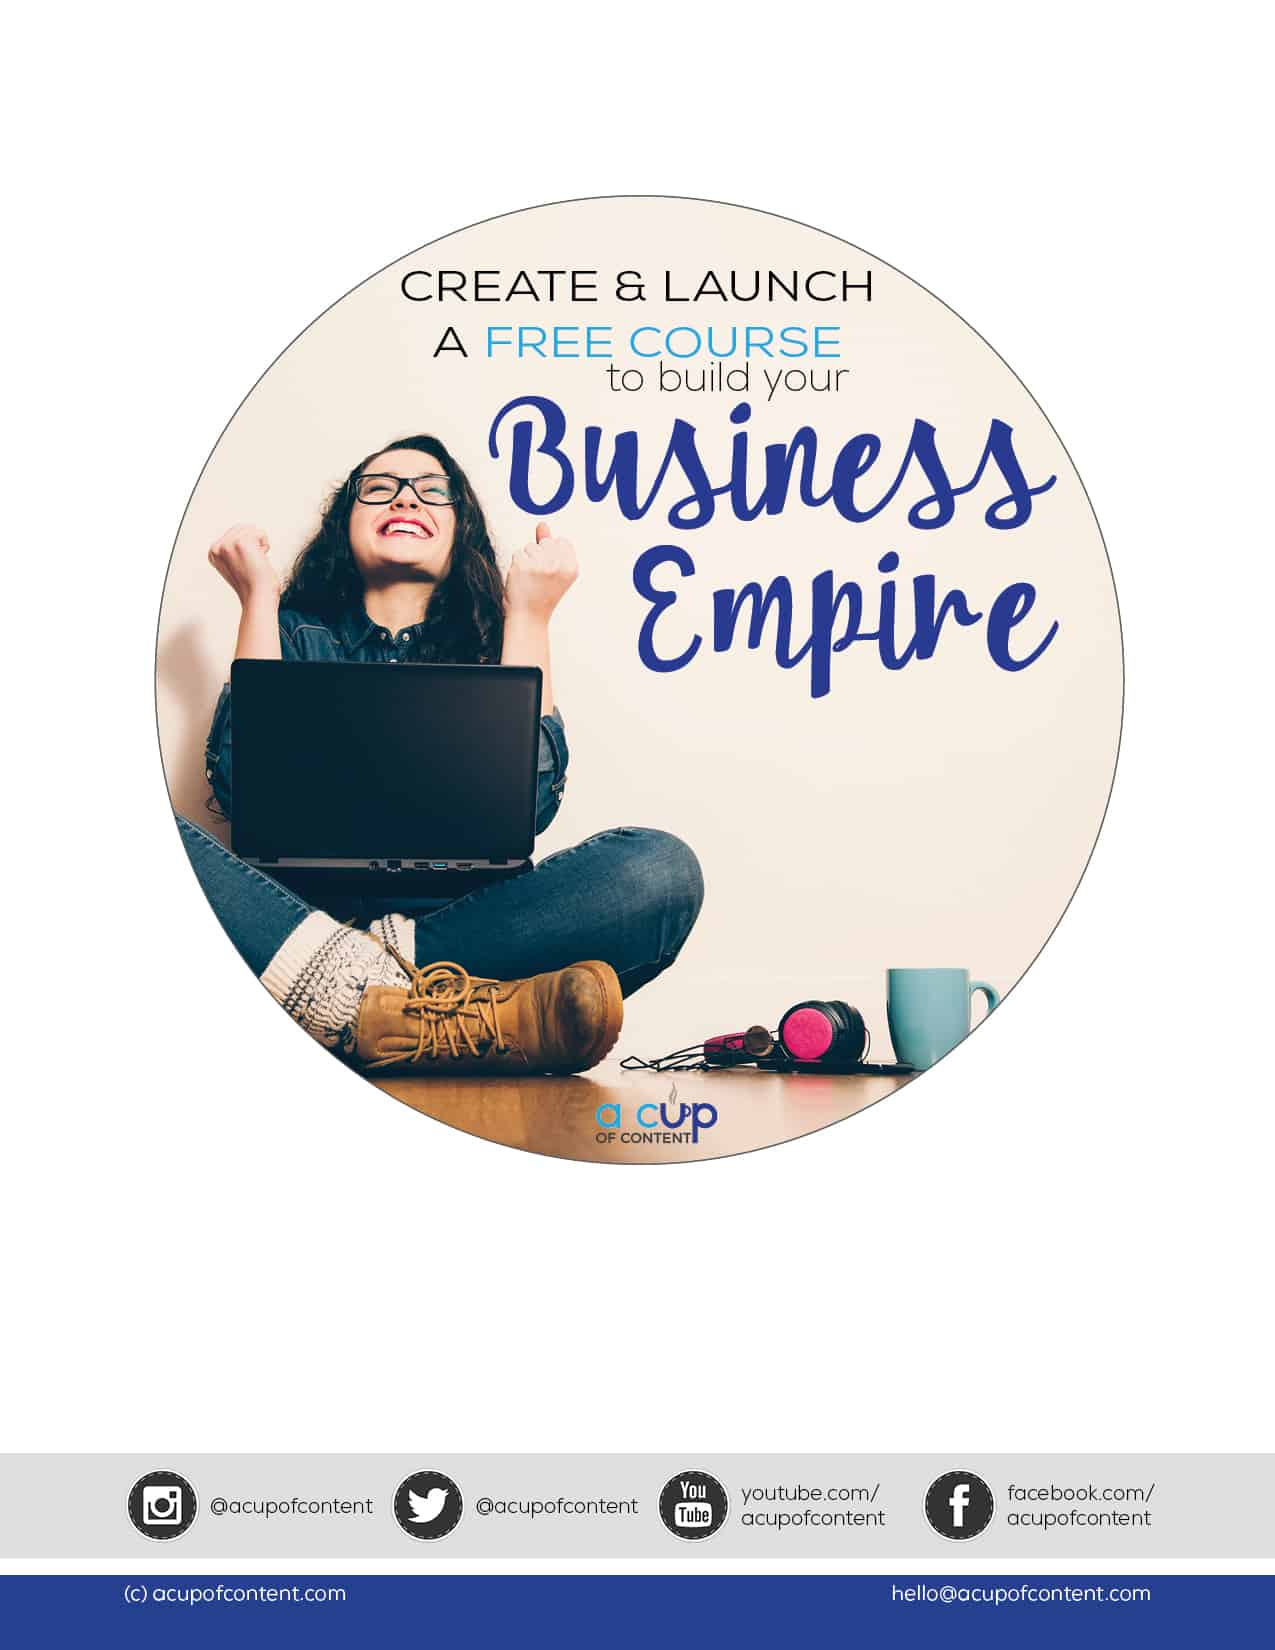 create and launch a free course to build your business empire